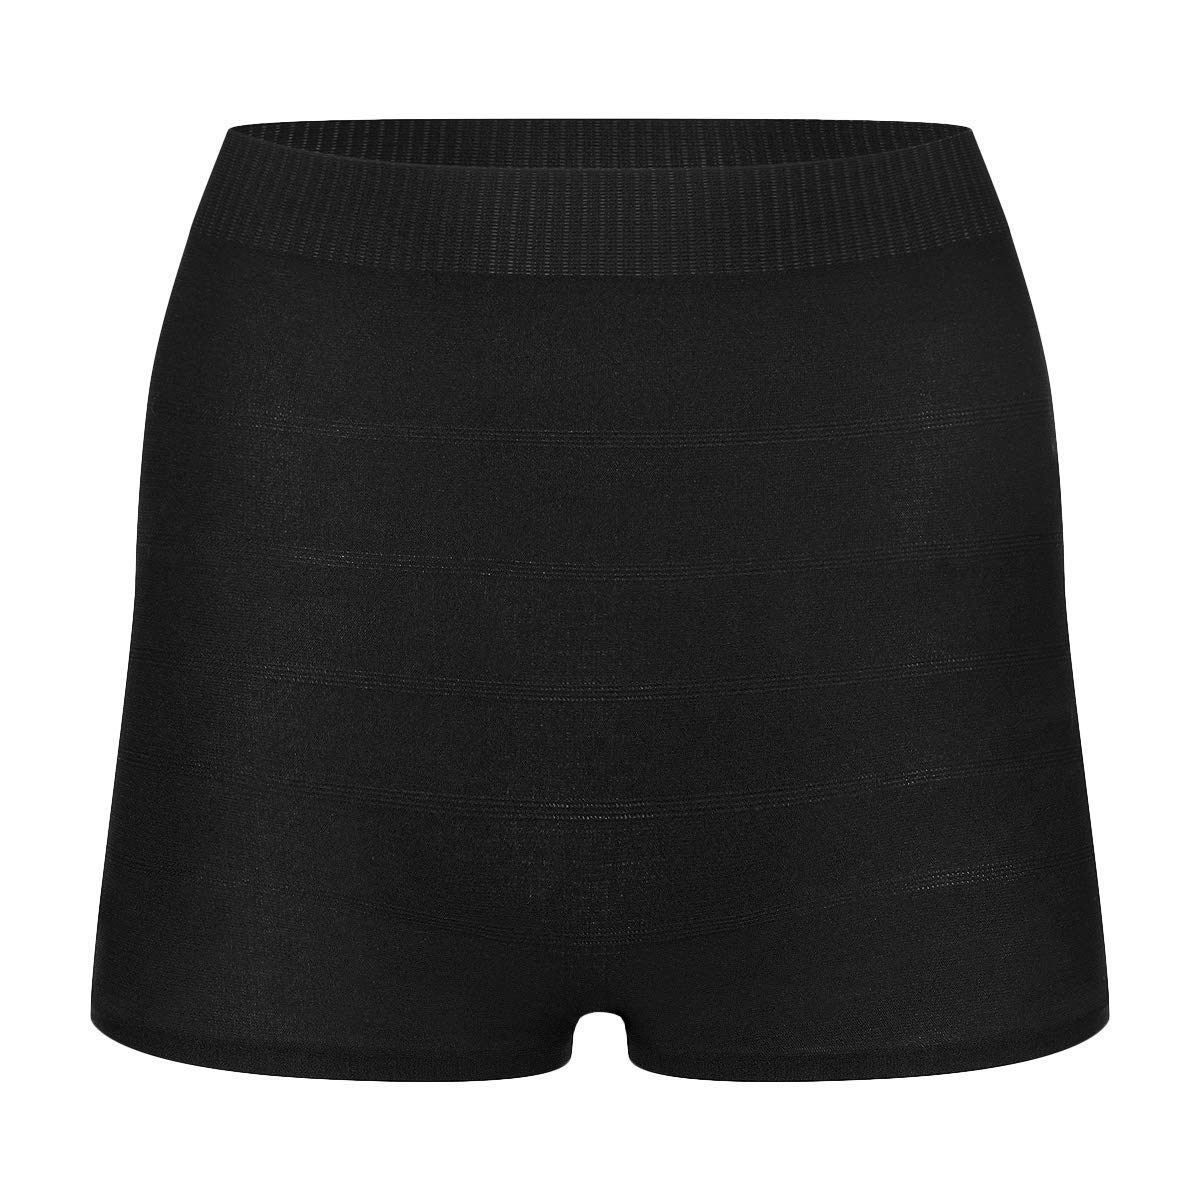 4. Brief Transitions Seamless Disposable